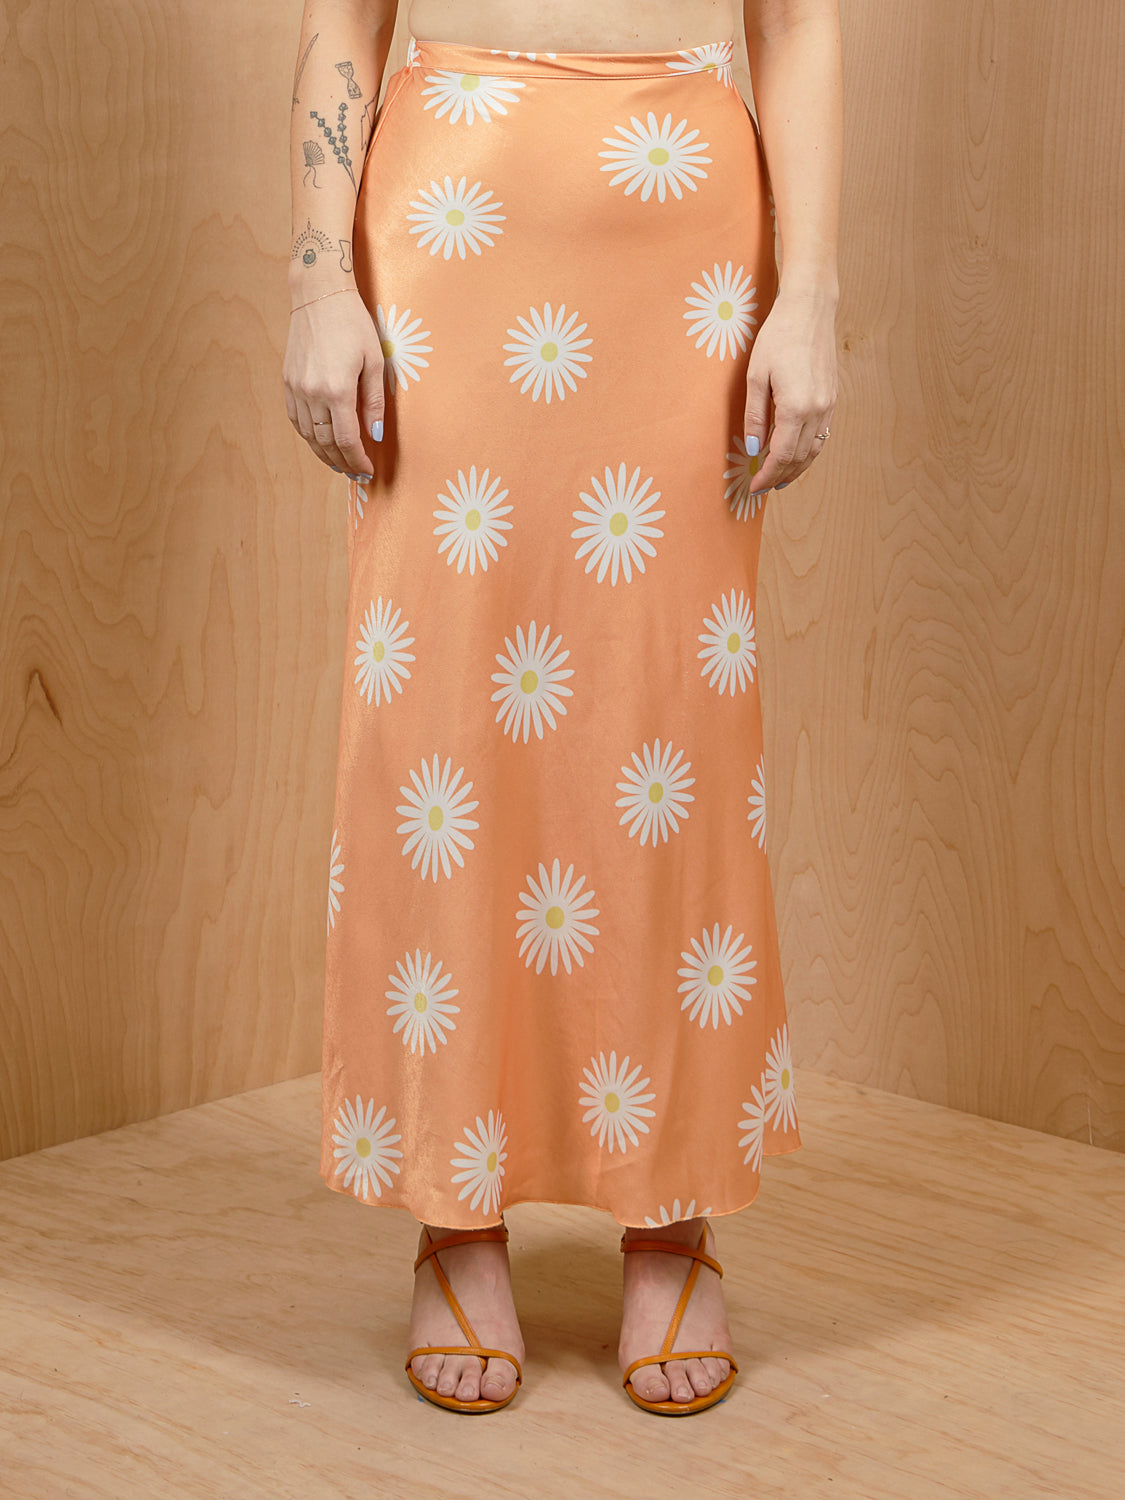 Free People Orange Flower Slip Skirt